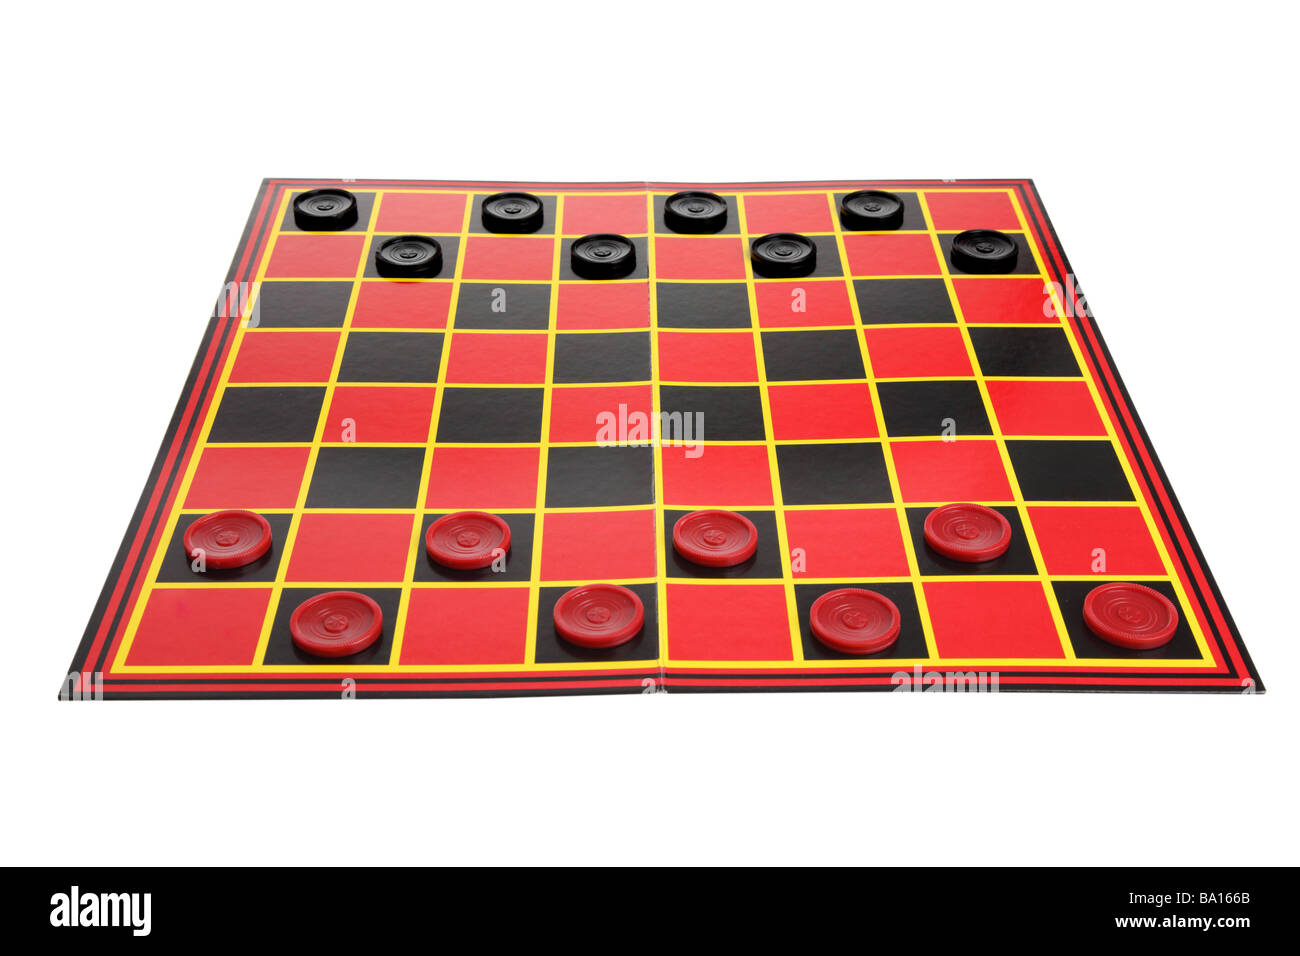 Checkers game board cutout on white background Stock Photo